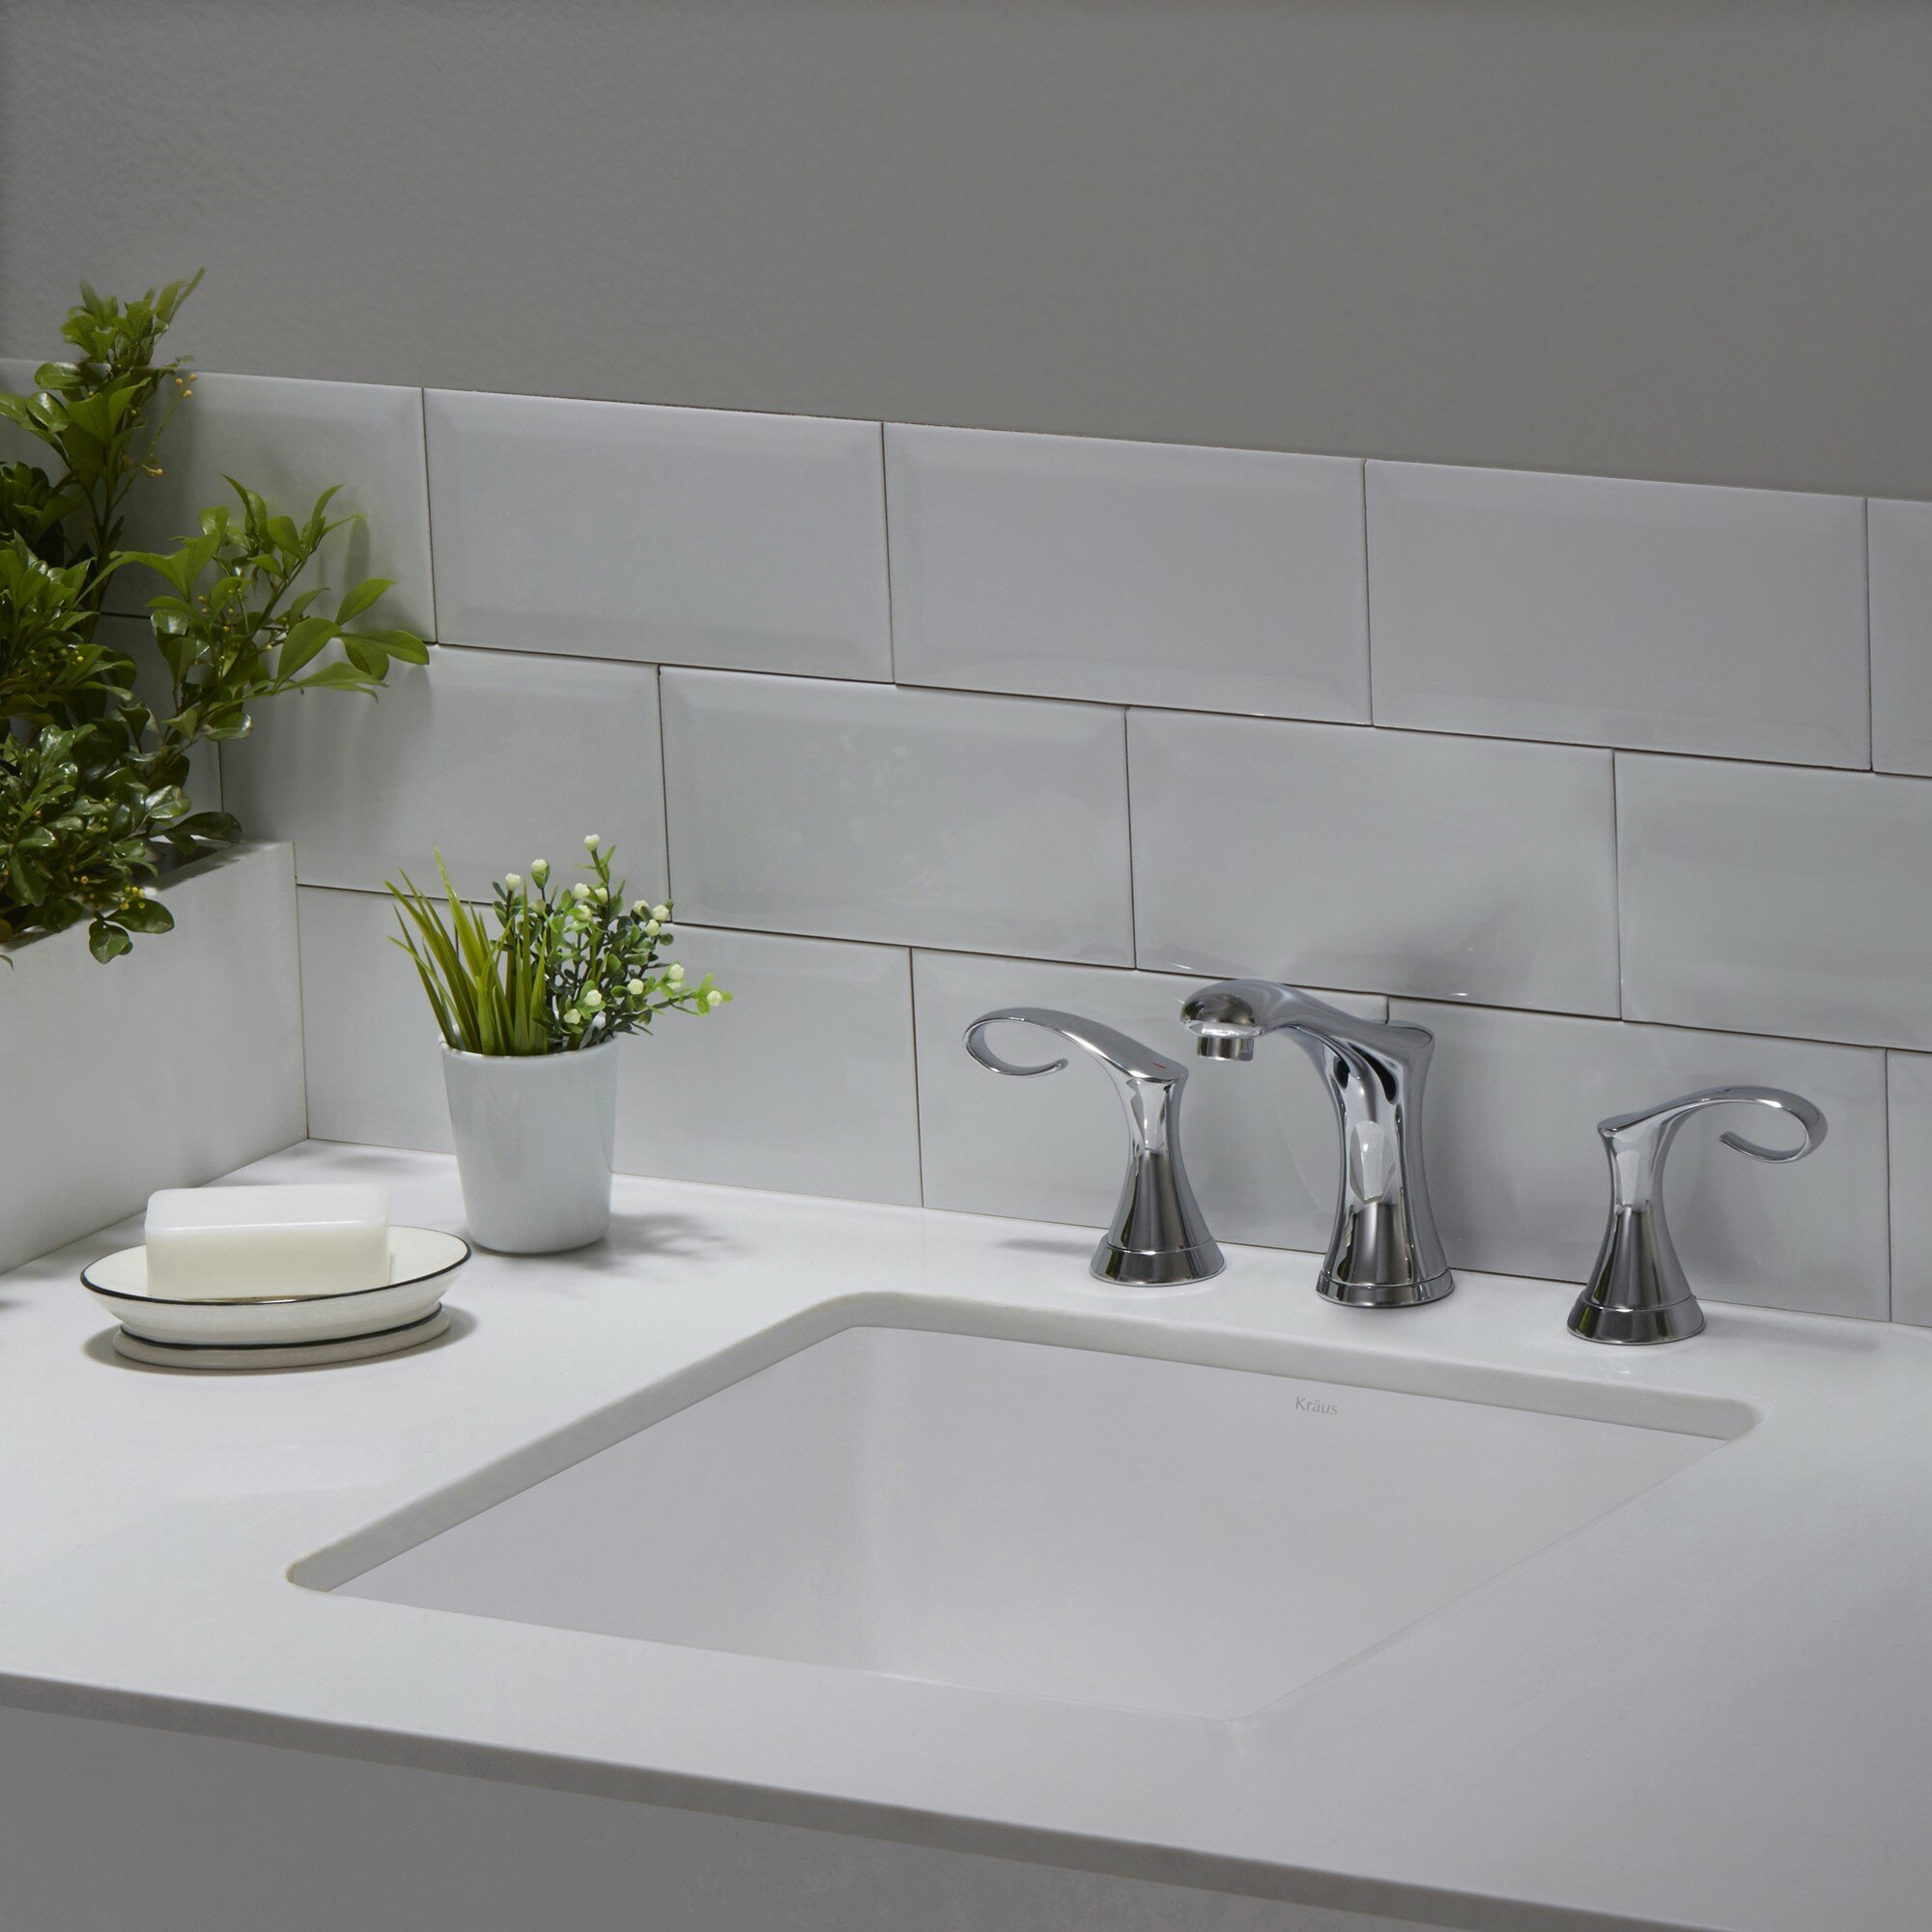 Elavo Ceramic Square Undermount Bathroom Sink With Overflow Wayfair